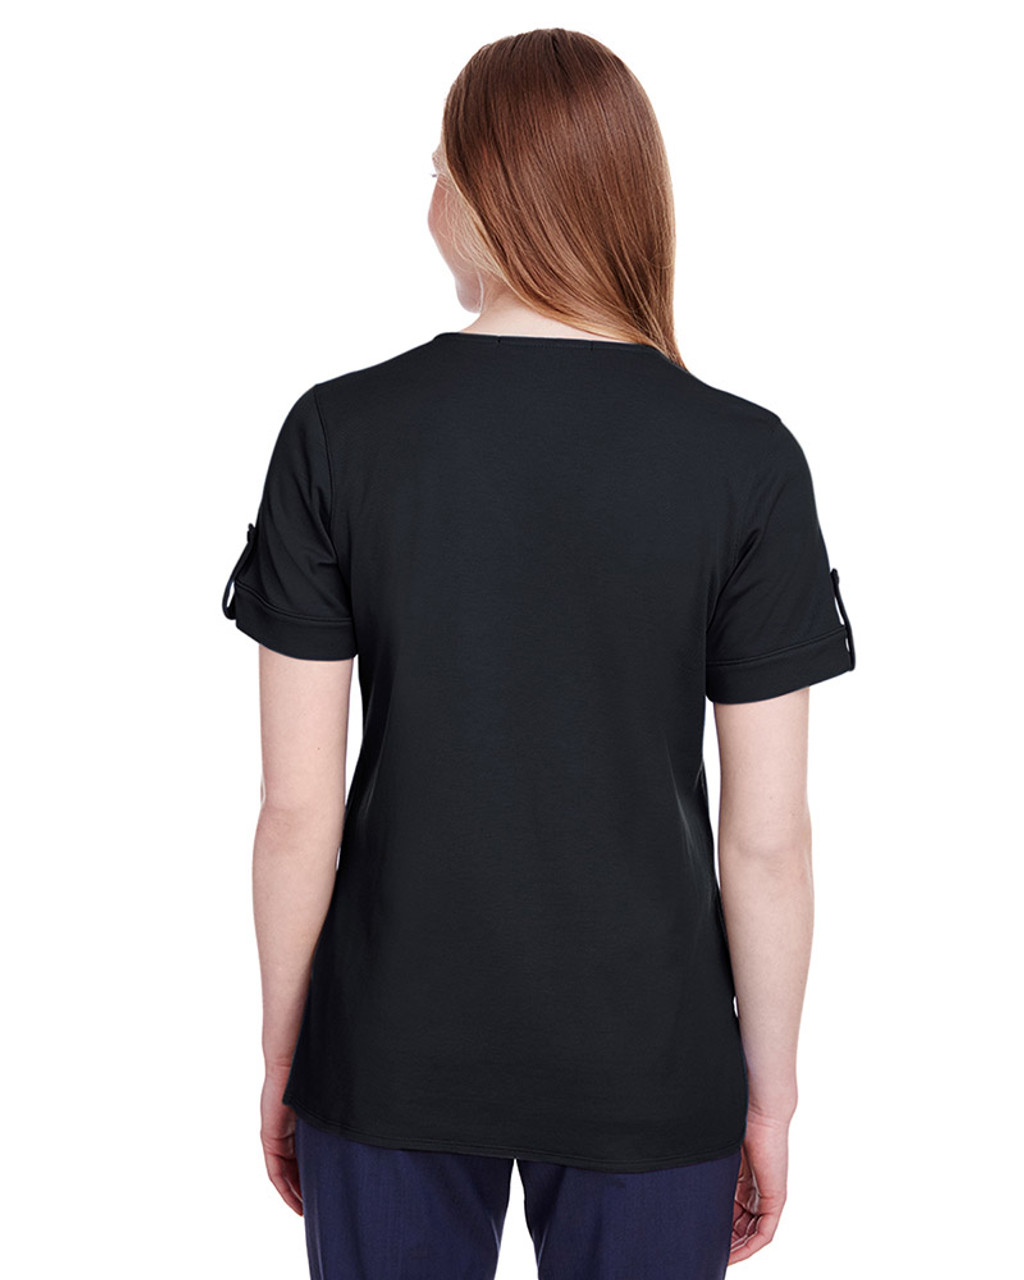 Black - back, DG20WB Devon & Jones Ladies' CrownLux Performance™ Plaited Rolled-Sleeve Top | Blankclothing.ca